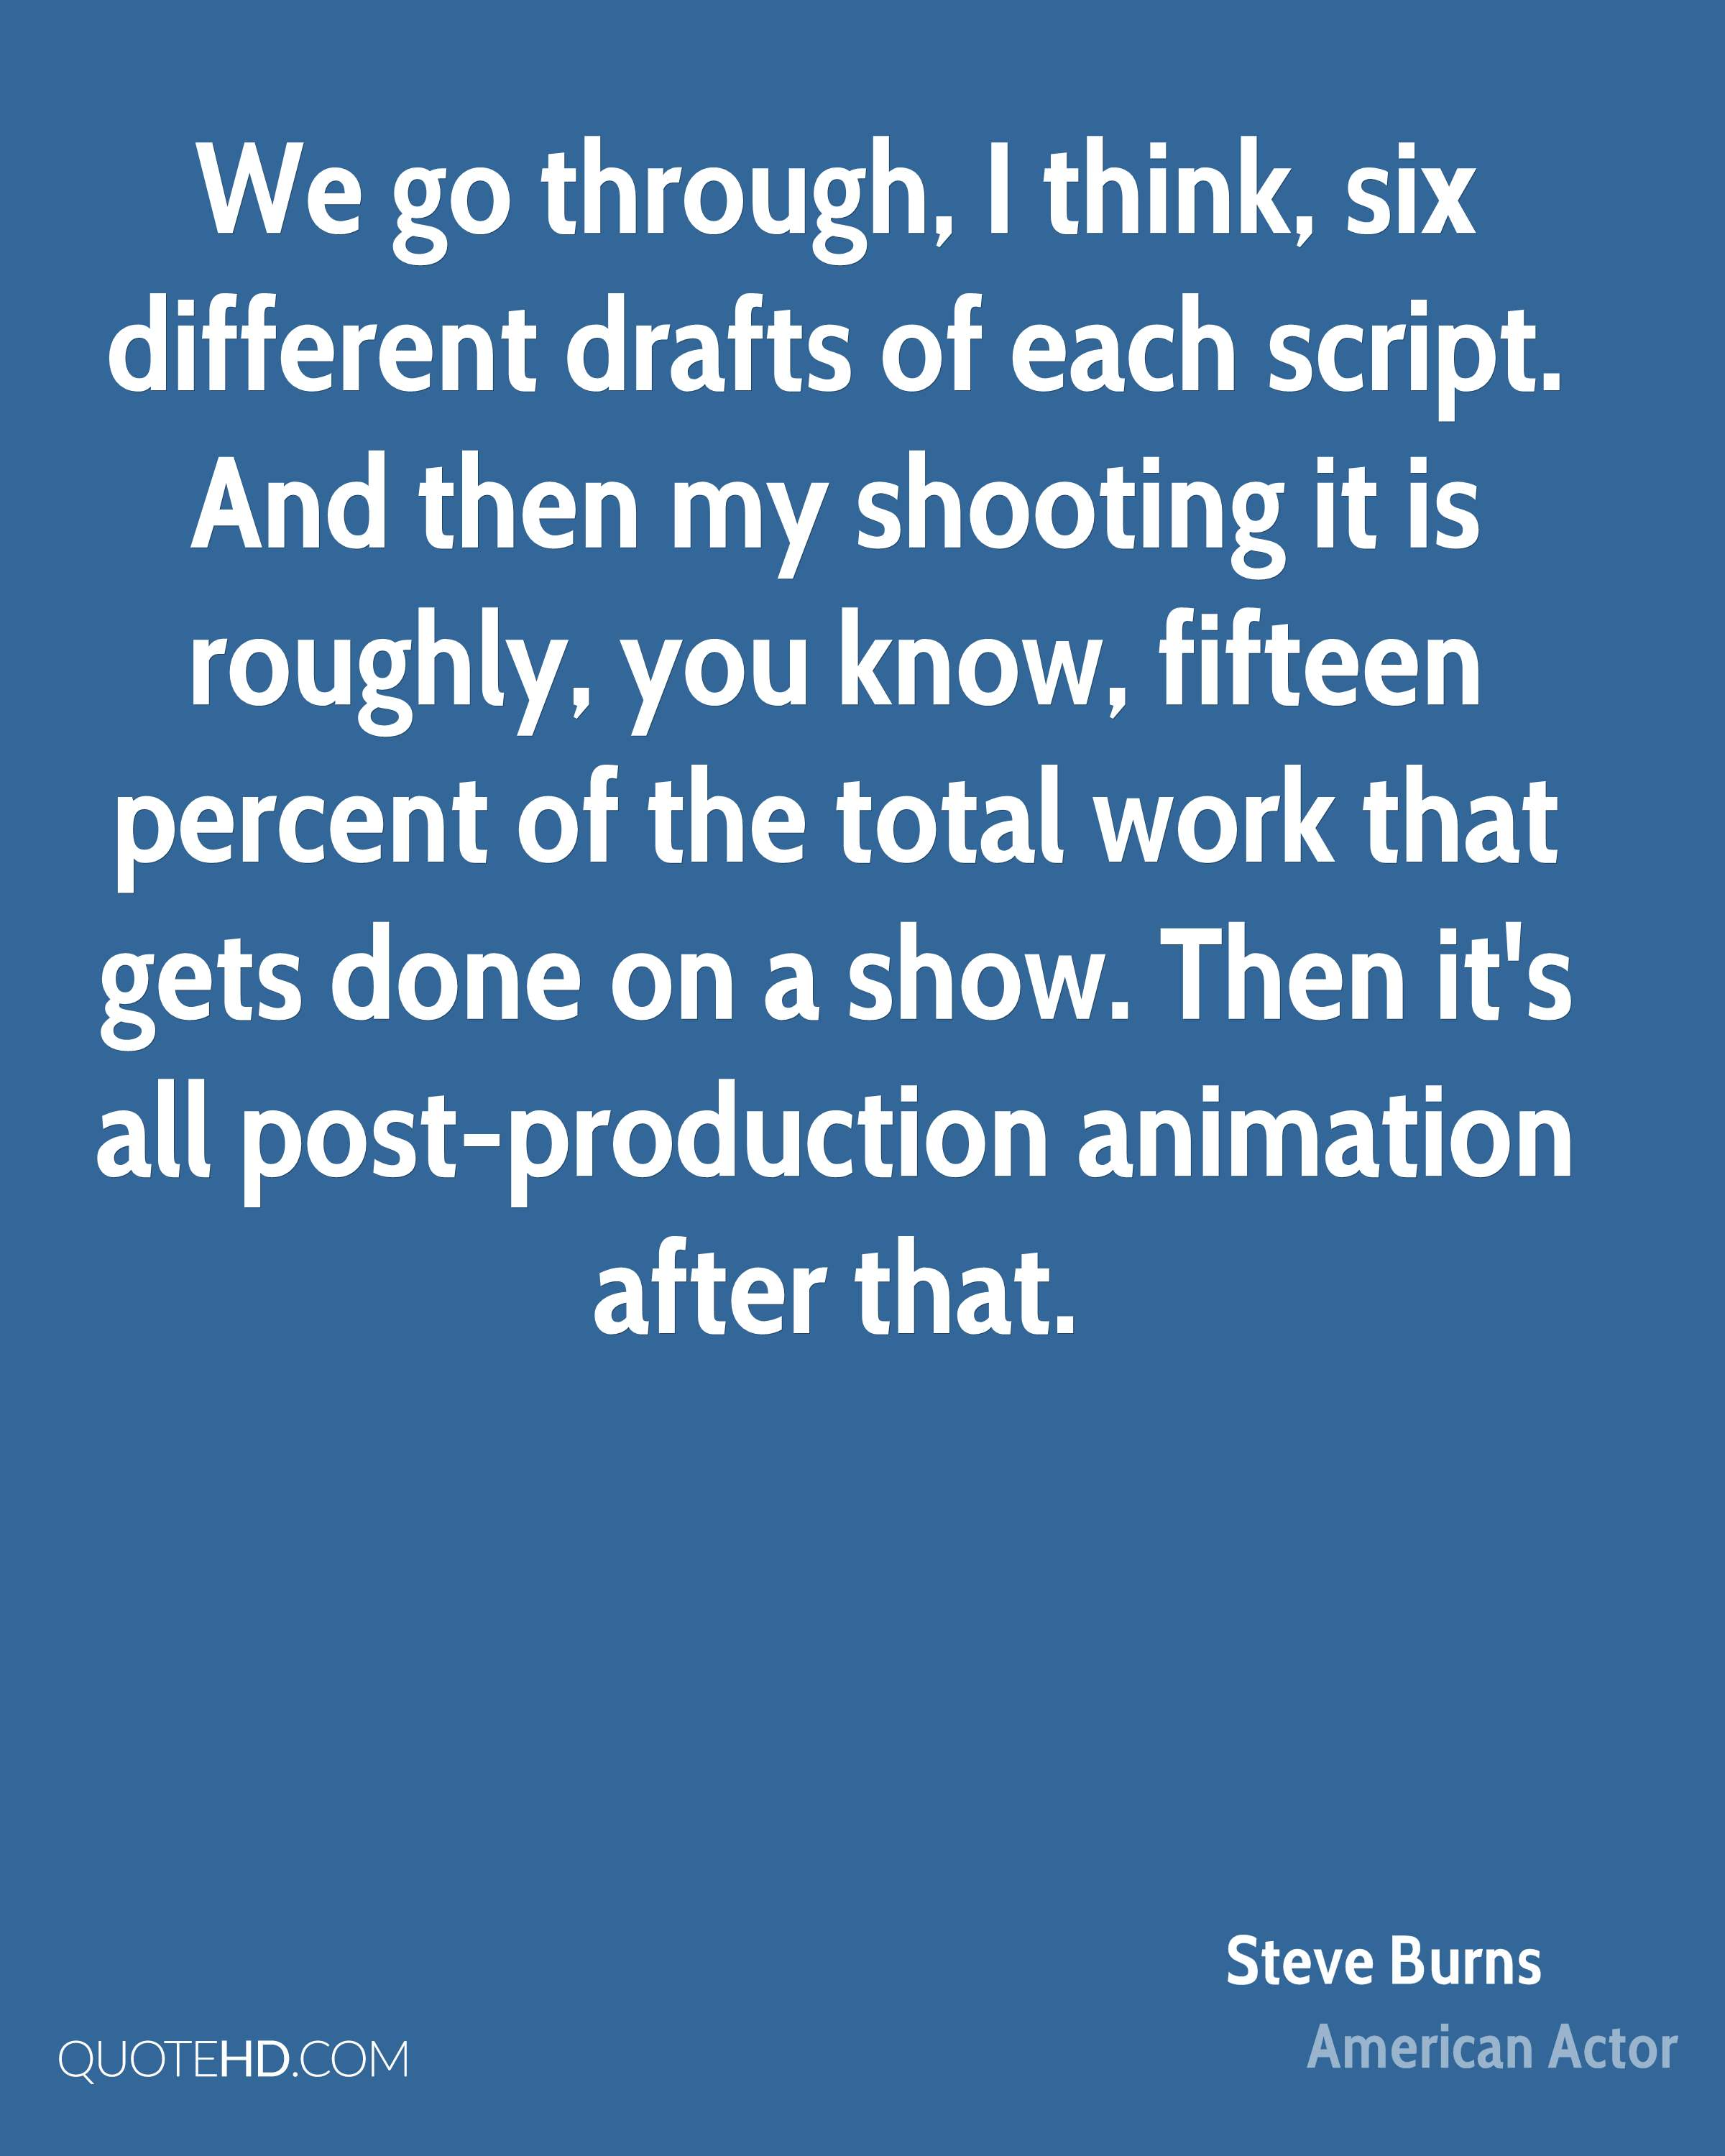 We go through, I think, six different drafts of each script. And then my shooting it is roughly, you know, fifteen percent of the total work that gets done on a show. Then it's all post-production animation after that.